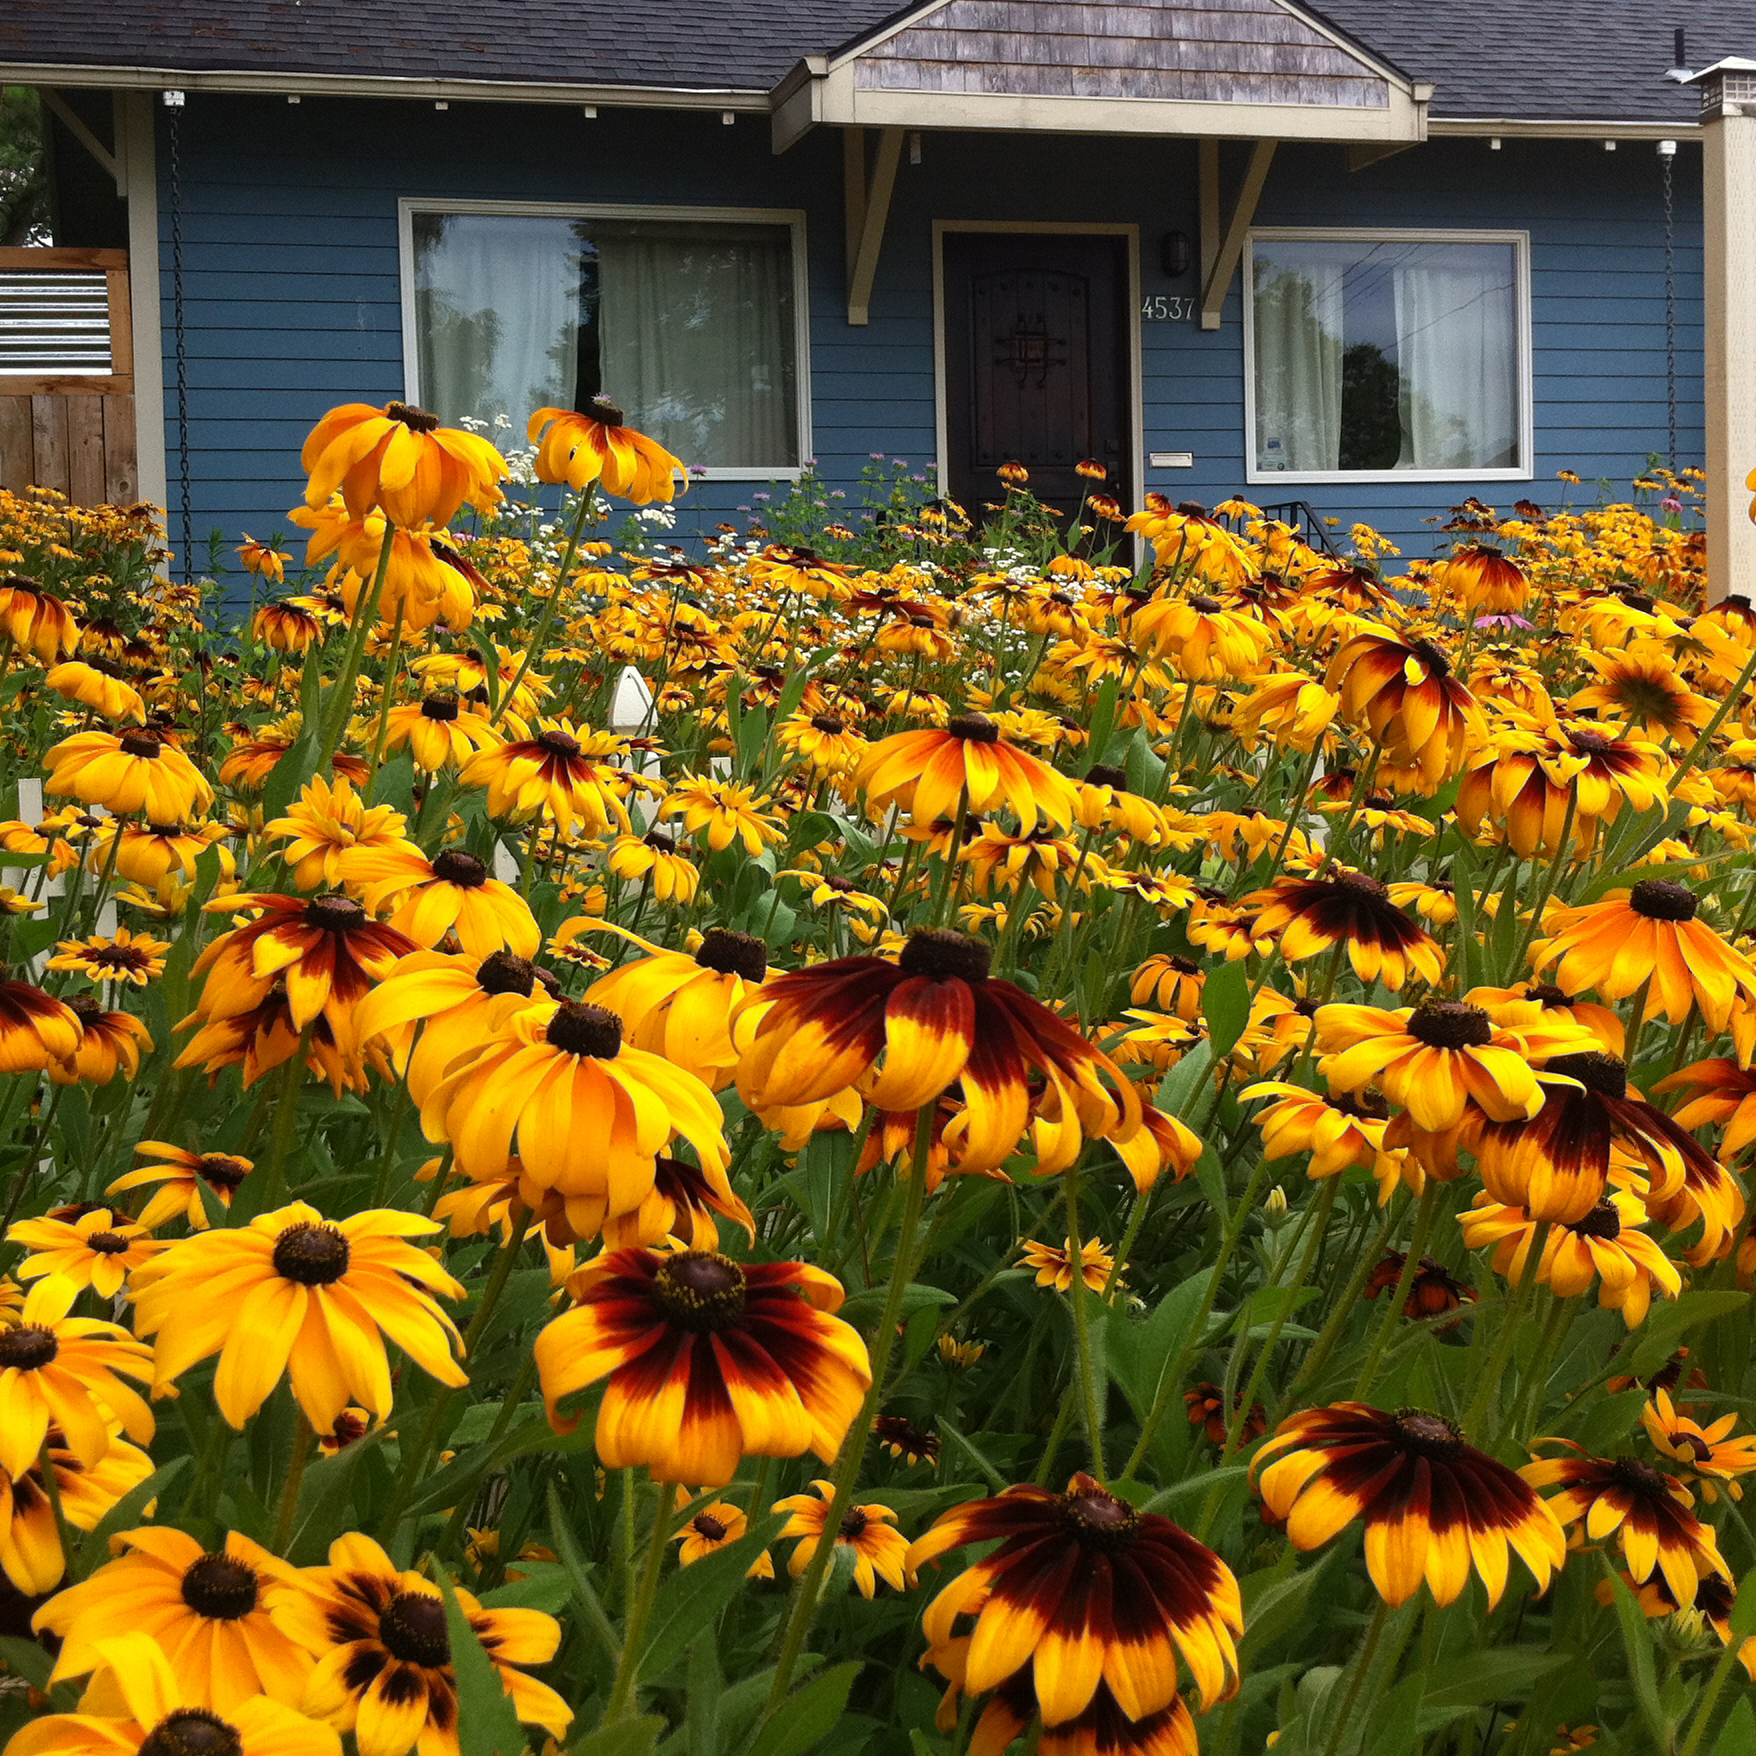 A yard is overrun in the best possible way, with an abundance of bright yellow flowers!